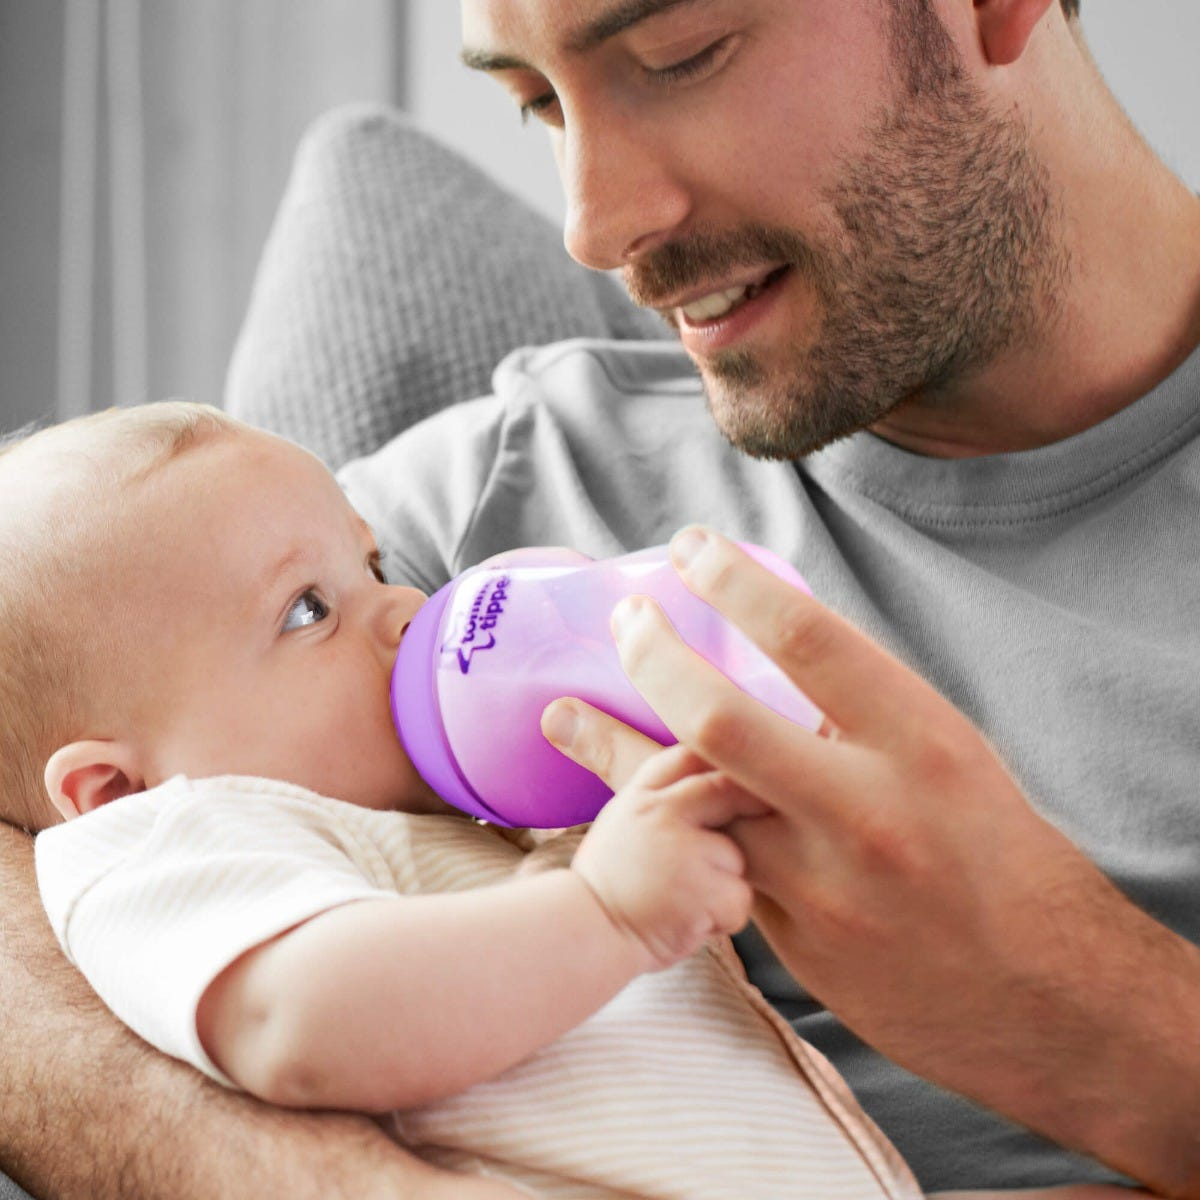 Dad feeding baby with Tommee Tippee bottle filled with milk